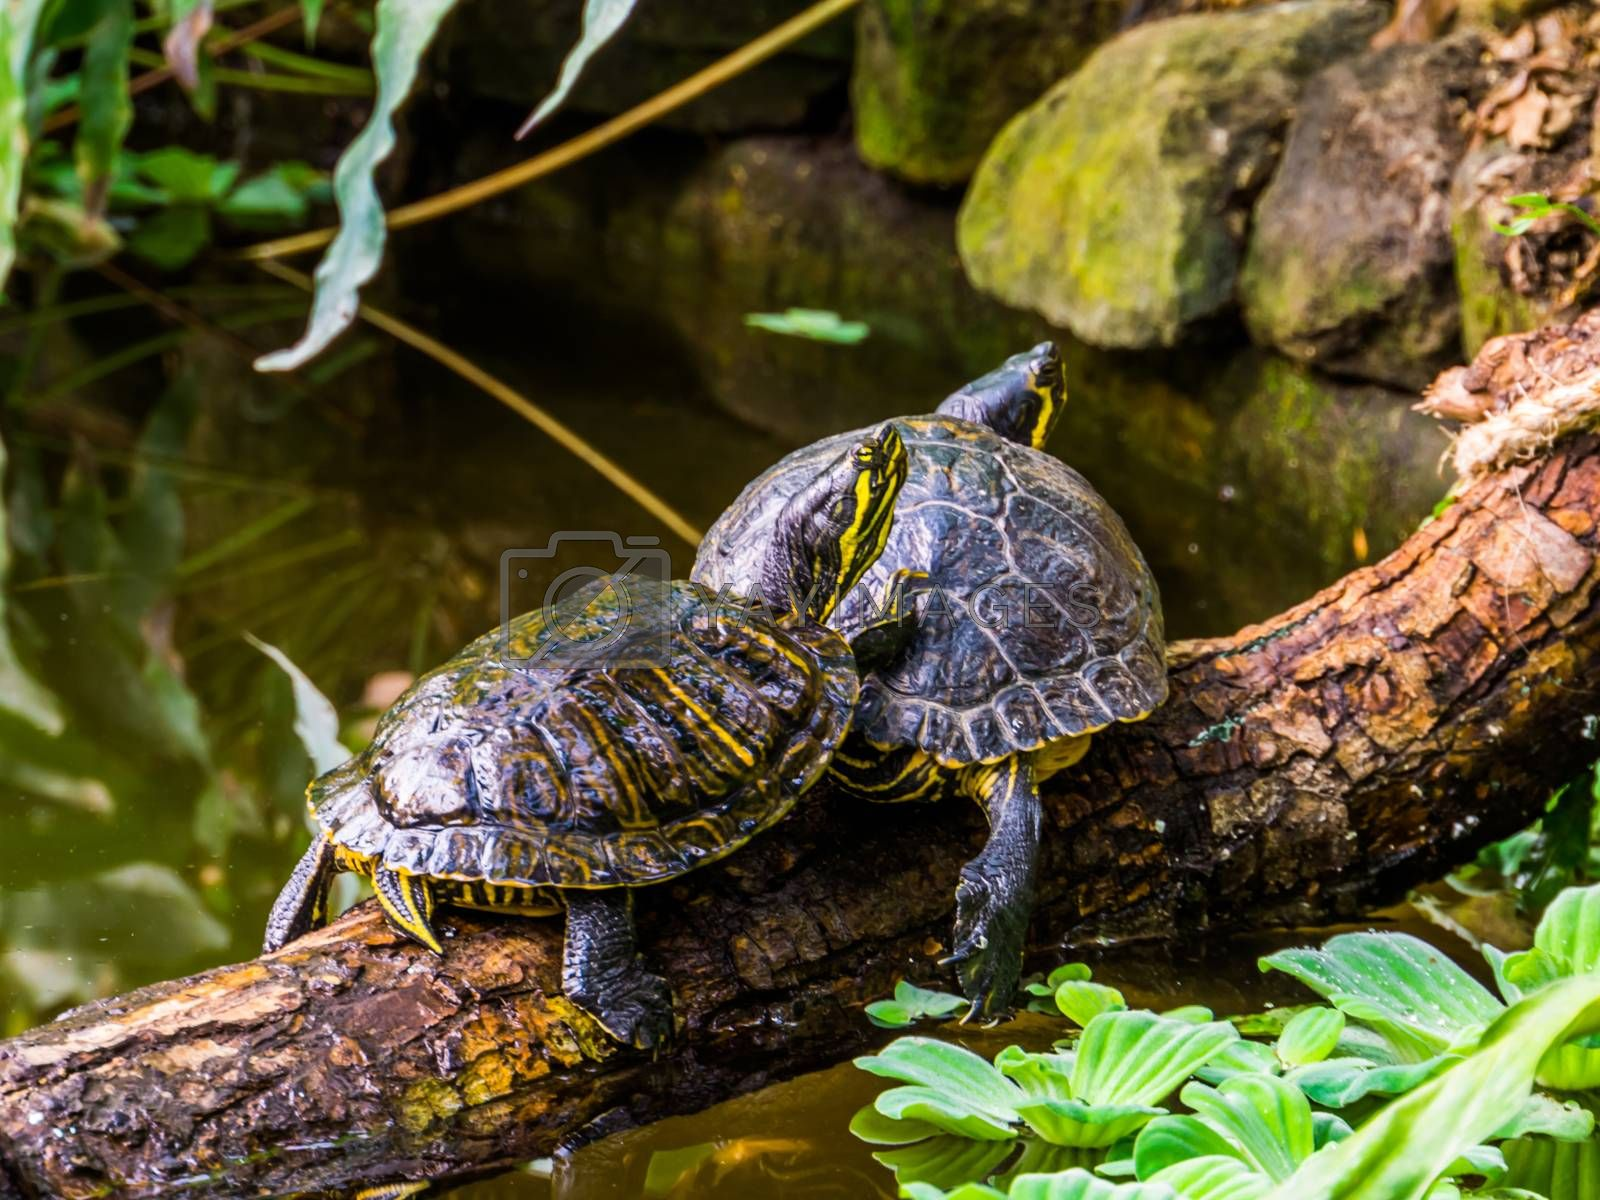 yellow bellied slider turtle couple at the water, popular tropical pets from America